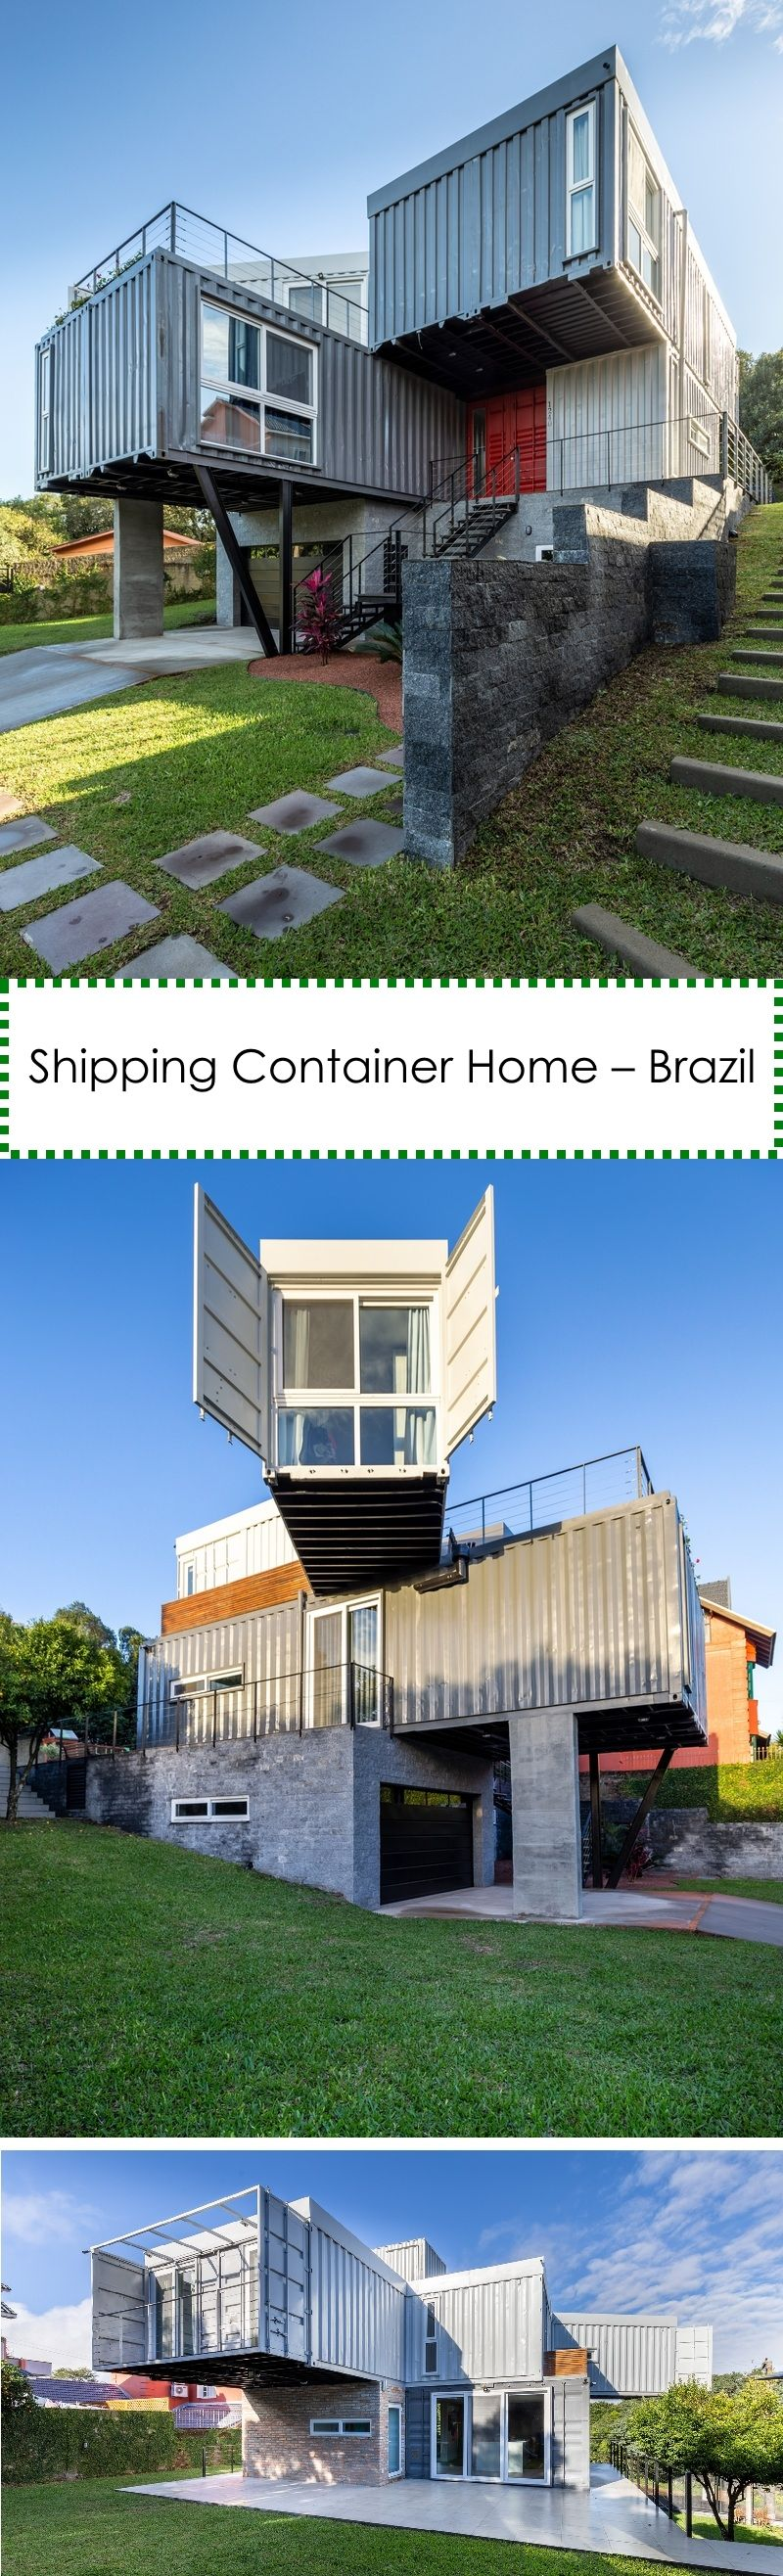 Shipping Container Home – Brazil  #containerhouse